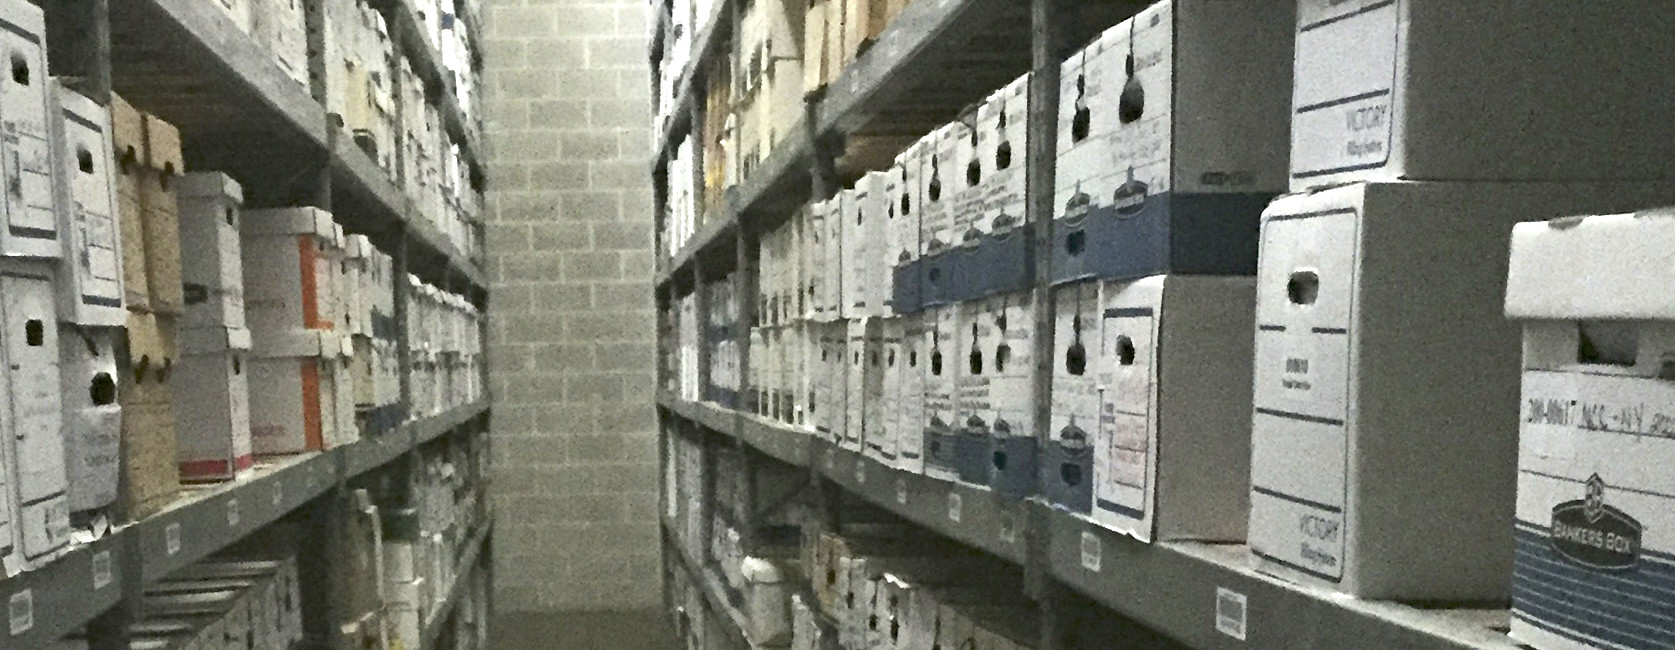 Document Storage Services In The Greater Chicago Area. Ohio Army National Guard Scholarship. Church Of The Beatitudes Phoenix. Miramar College Police Academy. Review University Of Phoenix. Appointment Scheduler Software. The Travel Corporation Risperdal Class Action. Diabetic Foot Problem Symptoms. American Medical Billing Association